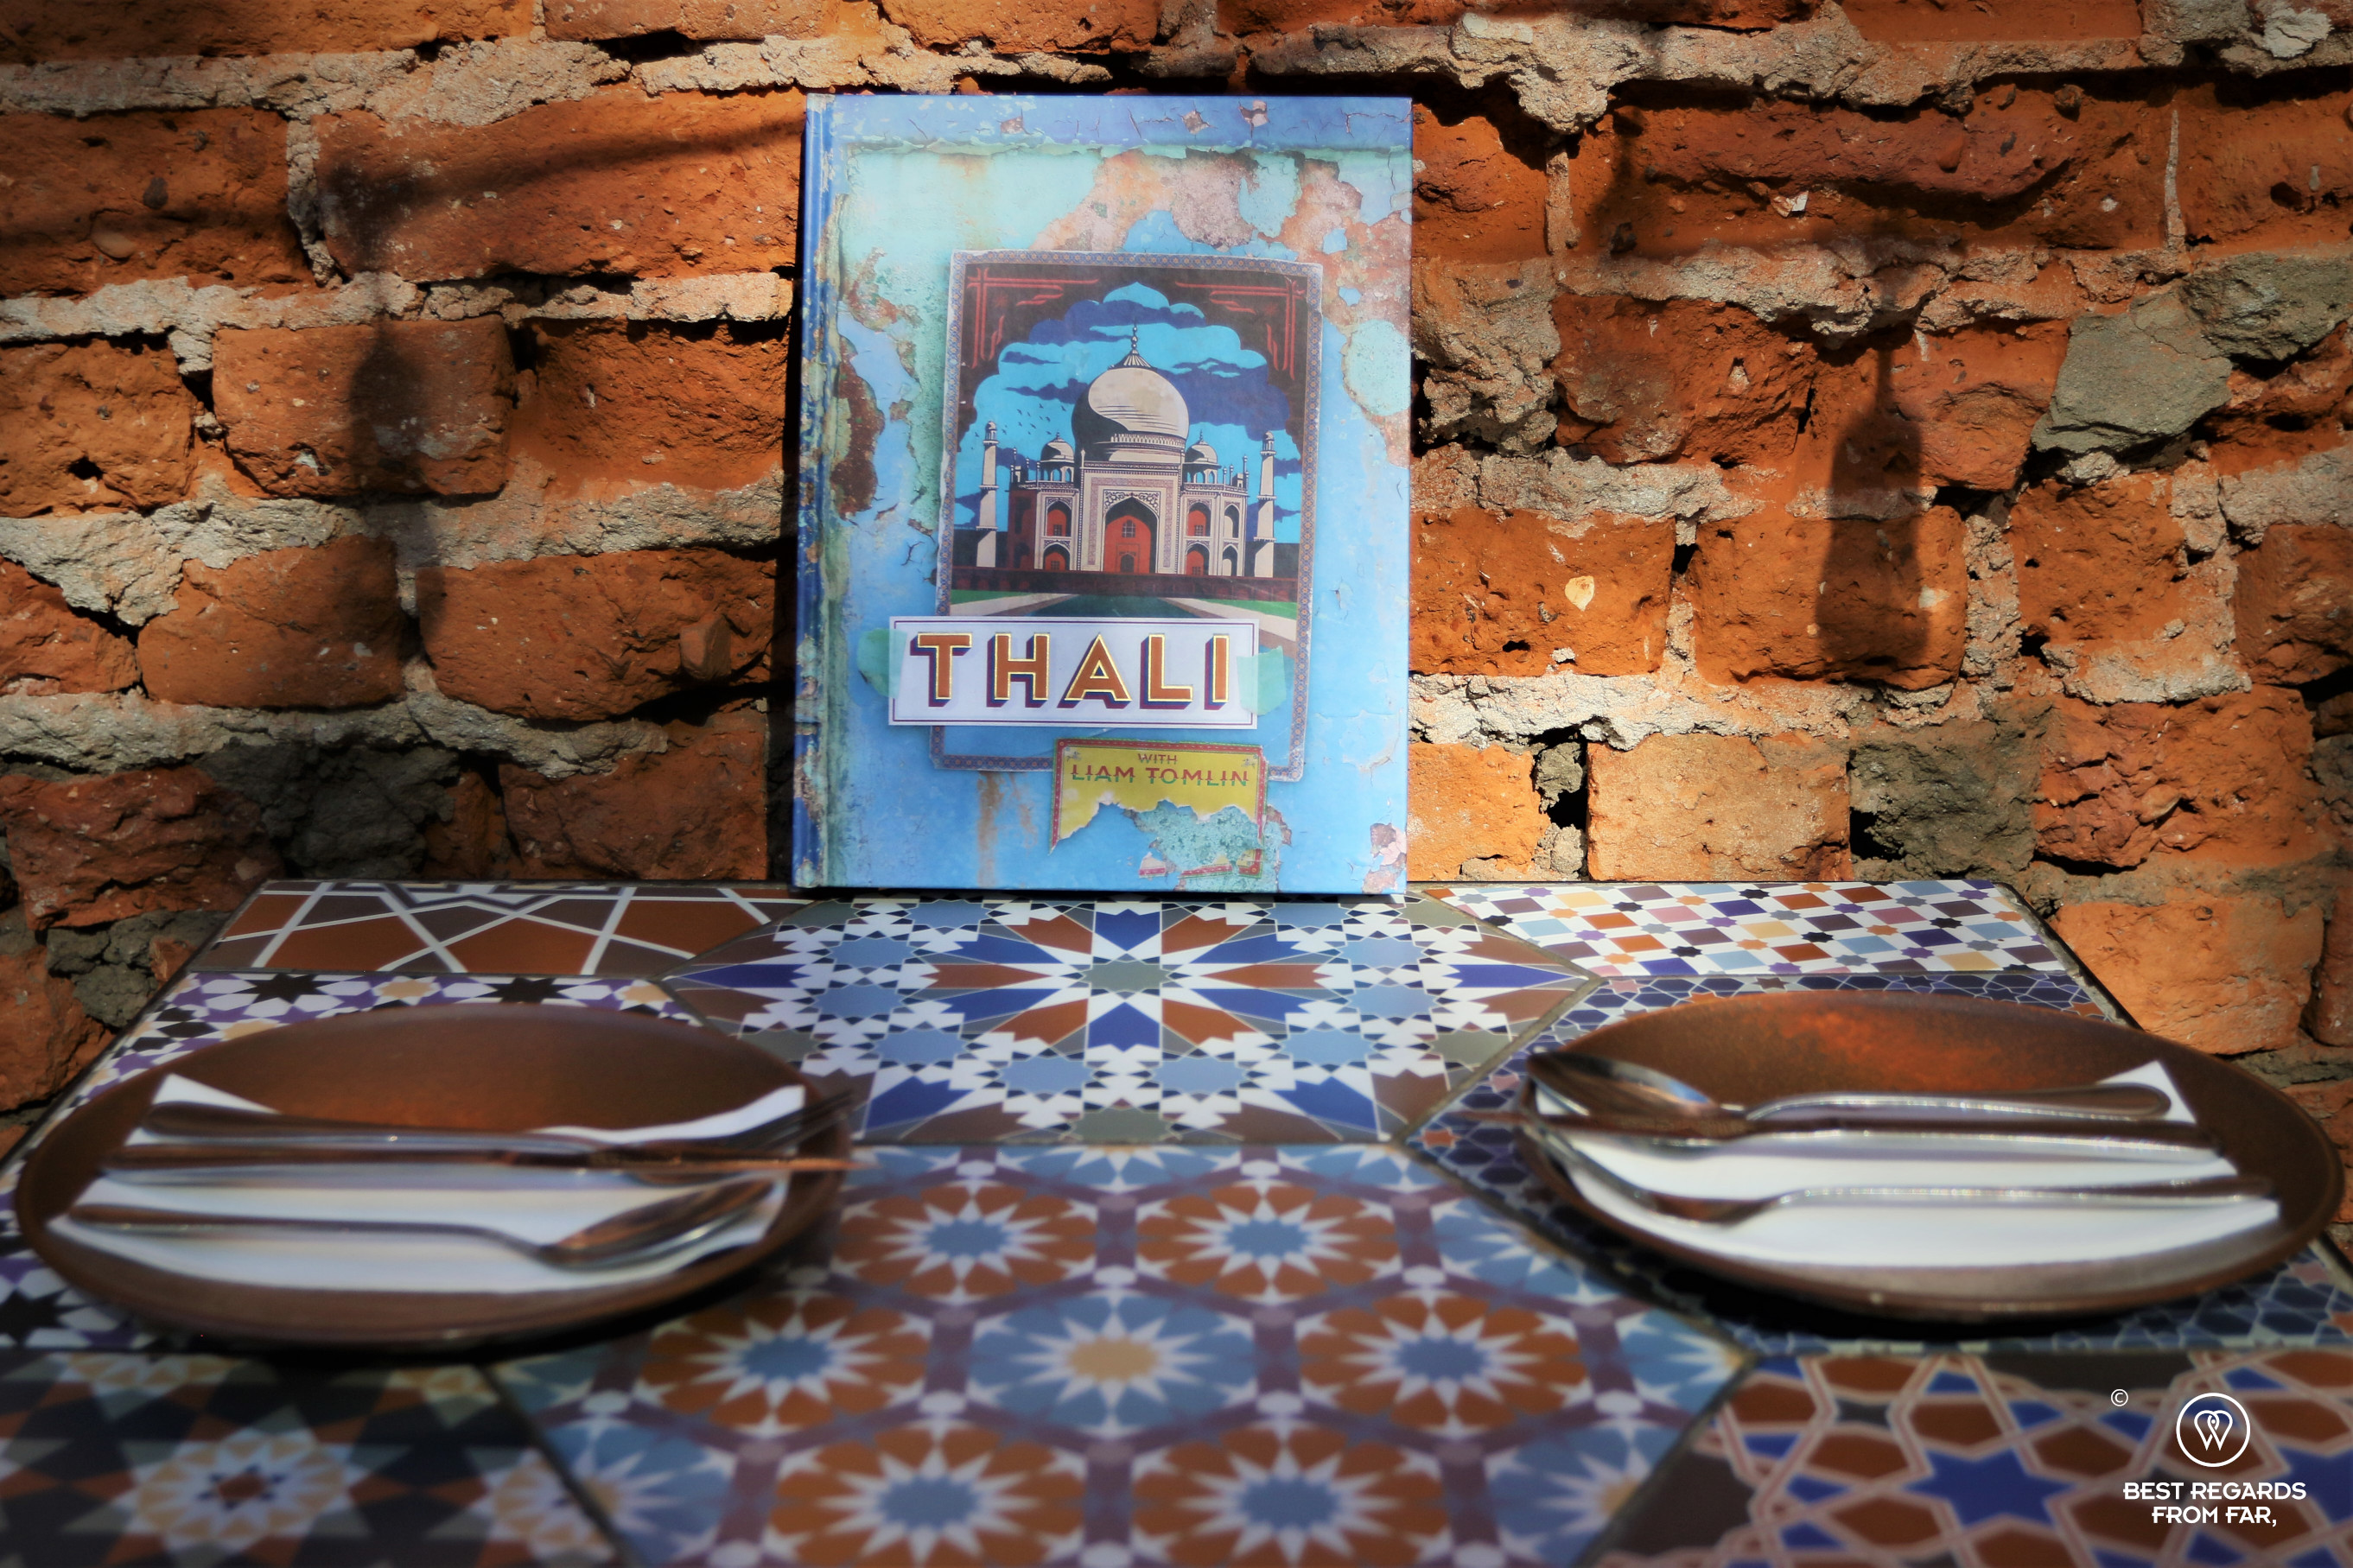 Table by a brick wall with the Thali cooking book in the courtyard of Thali, Cape Town